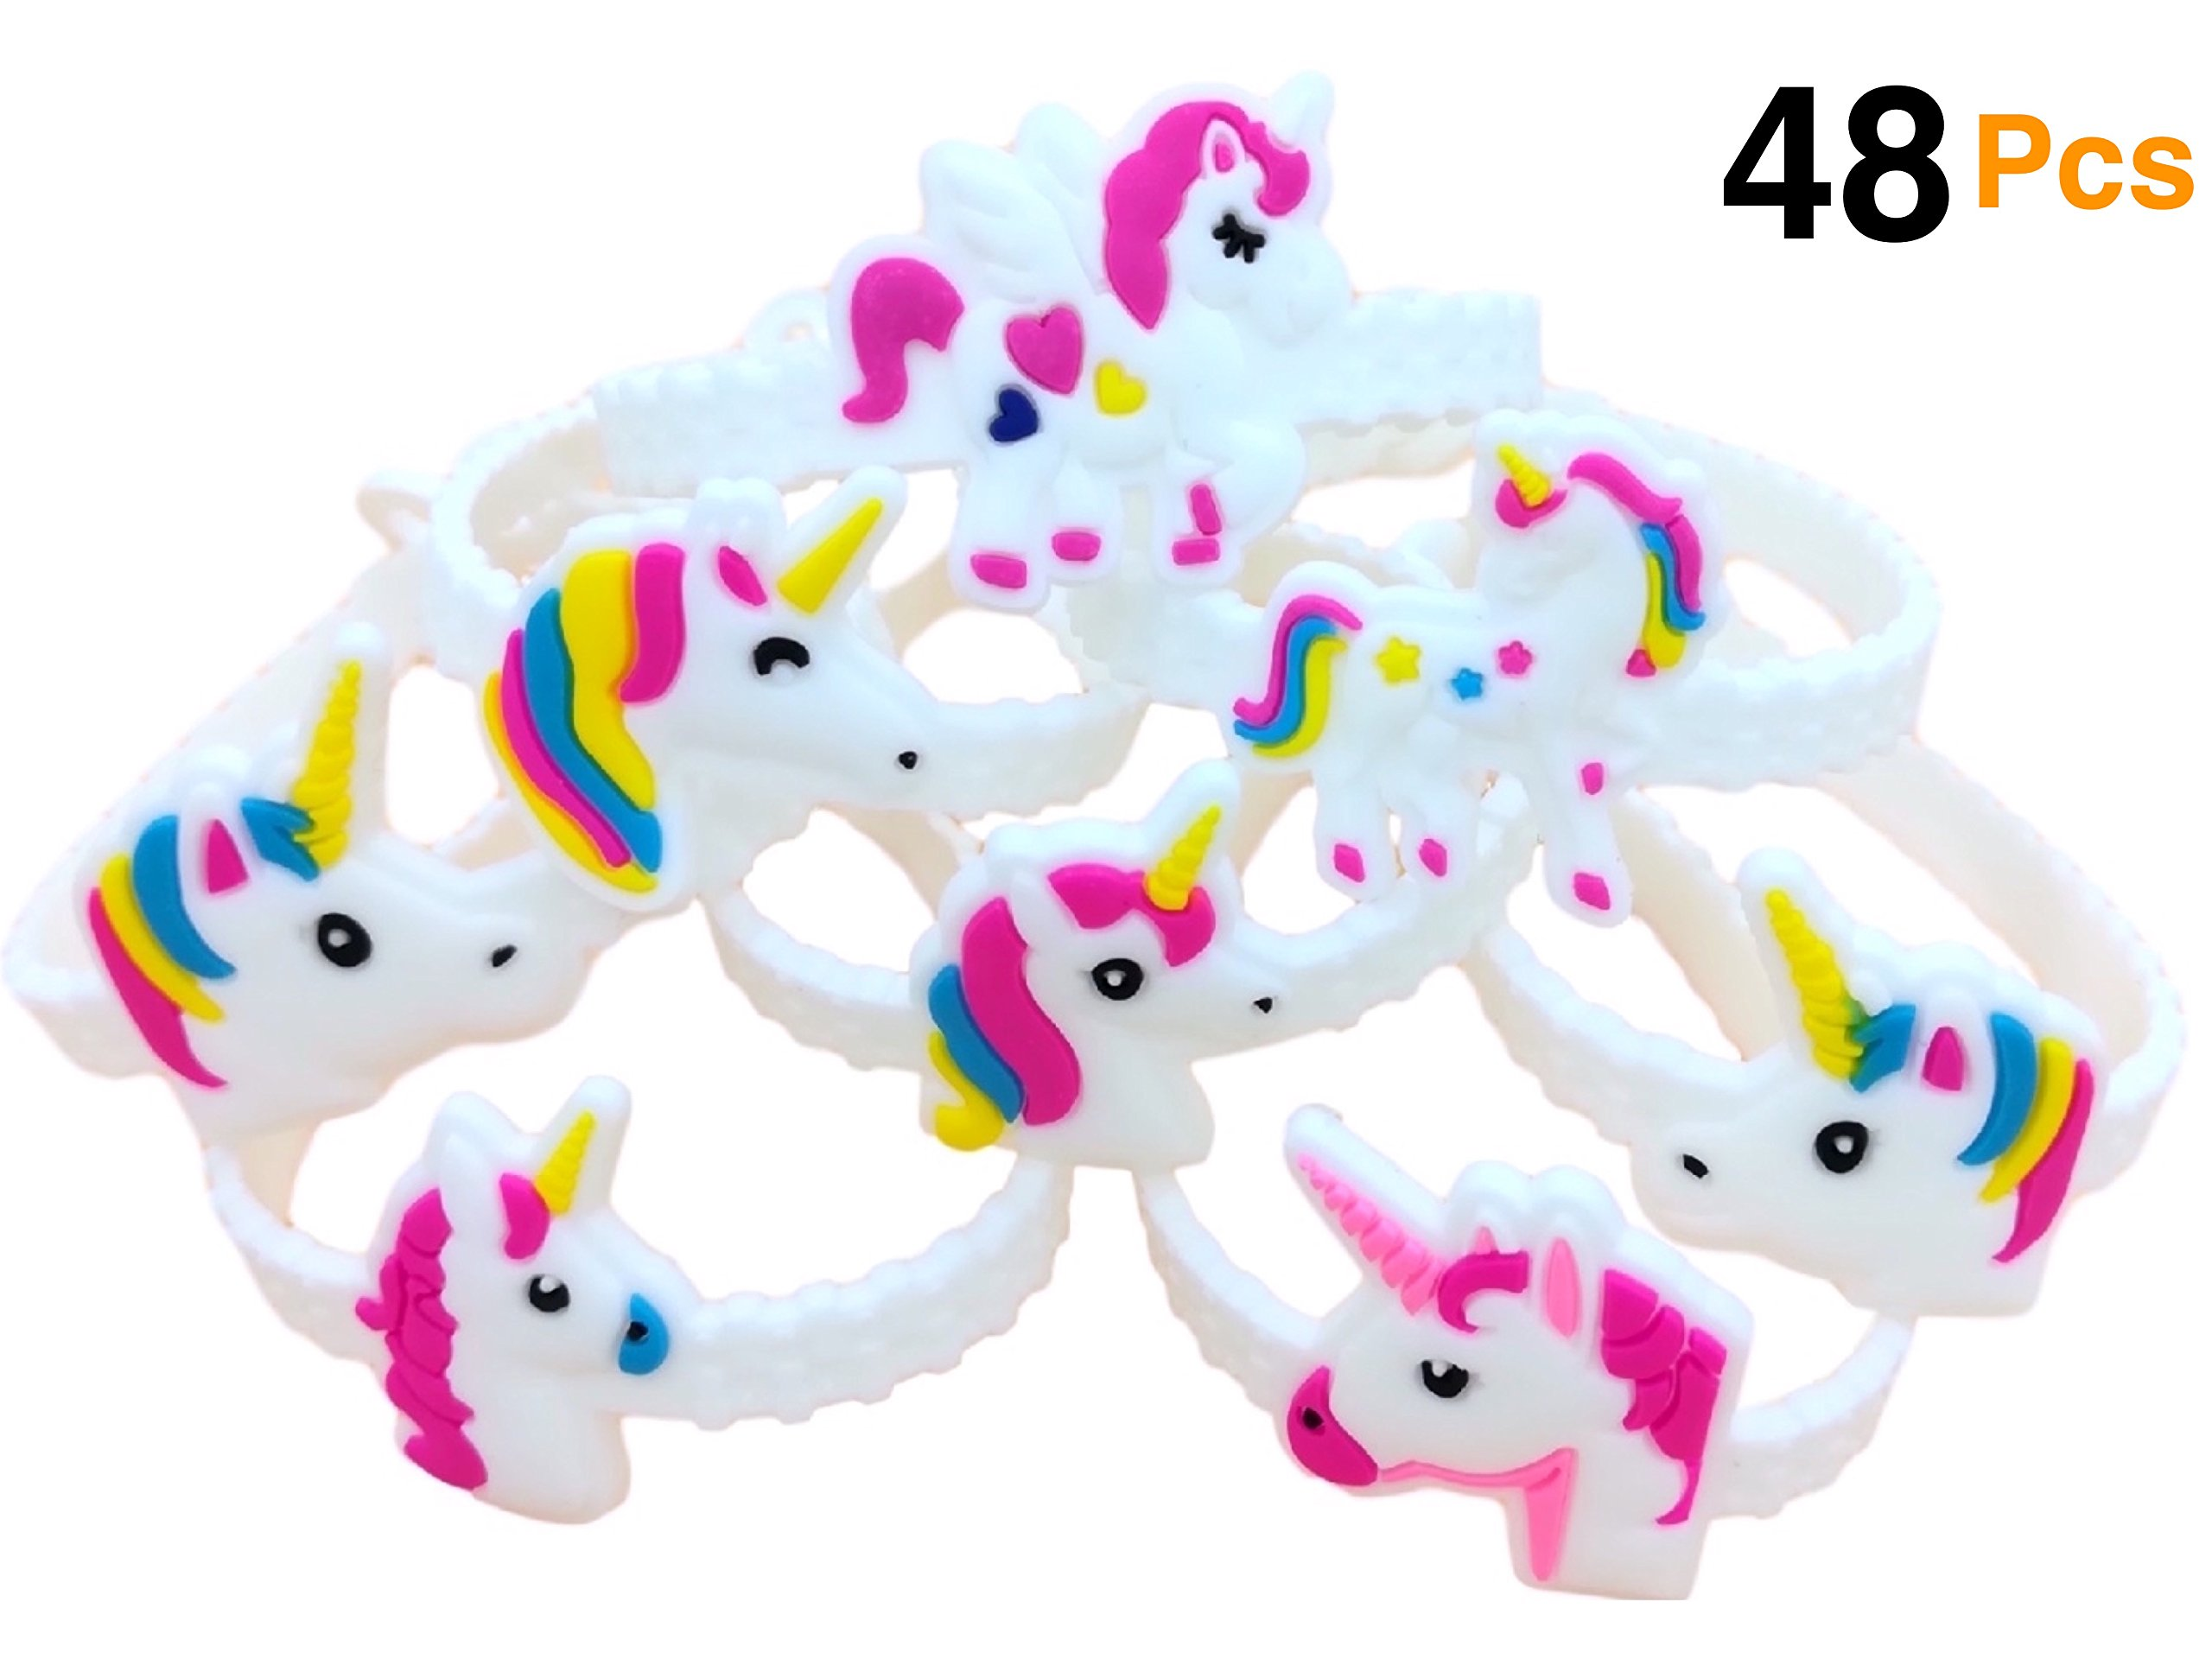 OHill Pack of 48 Unicorn Bracelets Wristbands for Birthday Party Supplies Favors, Novelty Toys and School Classroom Rewards